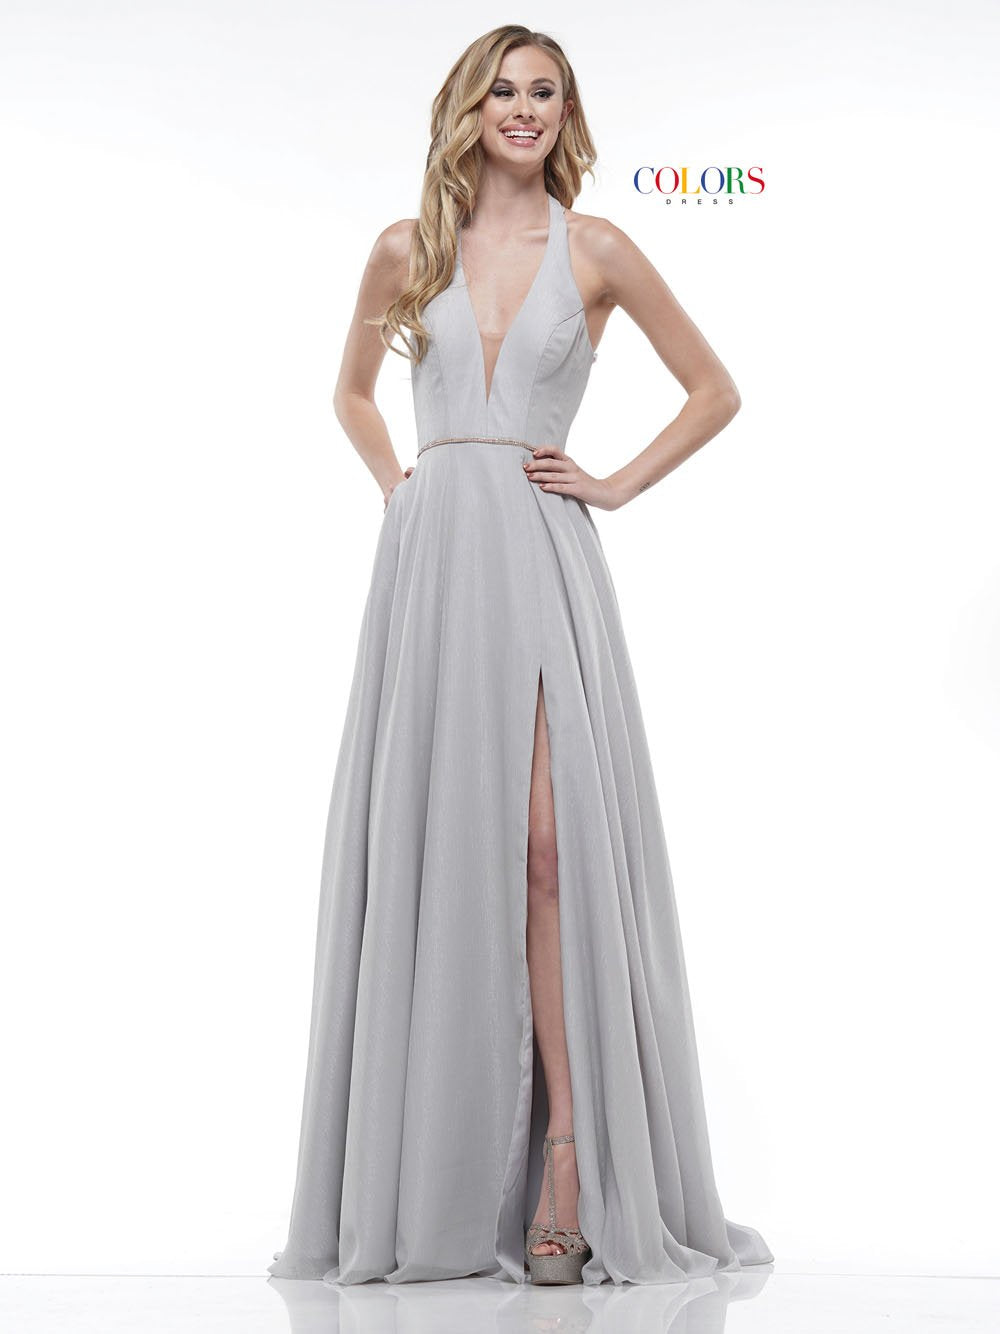 Colors Dress 2178 prom dress images.  Colors 2178 dresses are available in these colors: Blush, Grey, Red, Royal.